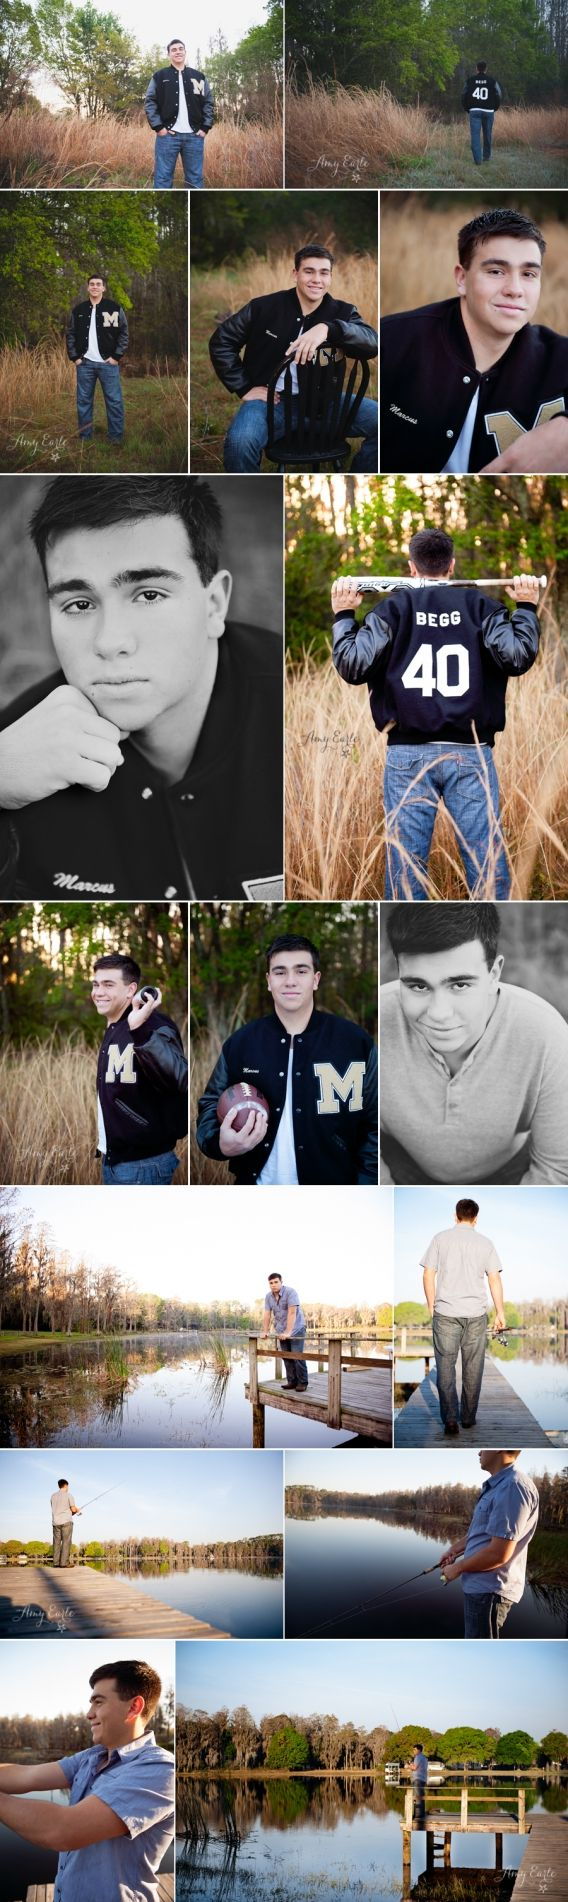 Marcus is such a great kid! He's an incredible athlete and played both baseball and football for his high school. He loves to spend his downtime fishing. Last fall he took my oldest son fishing and they had a great time! Marcus is a natural leader and others love to be around him. He's leaving in a…